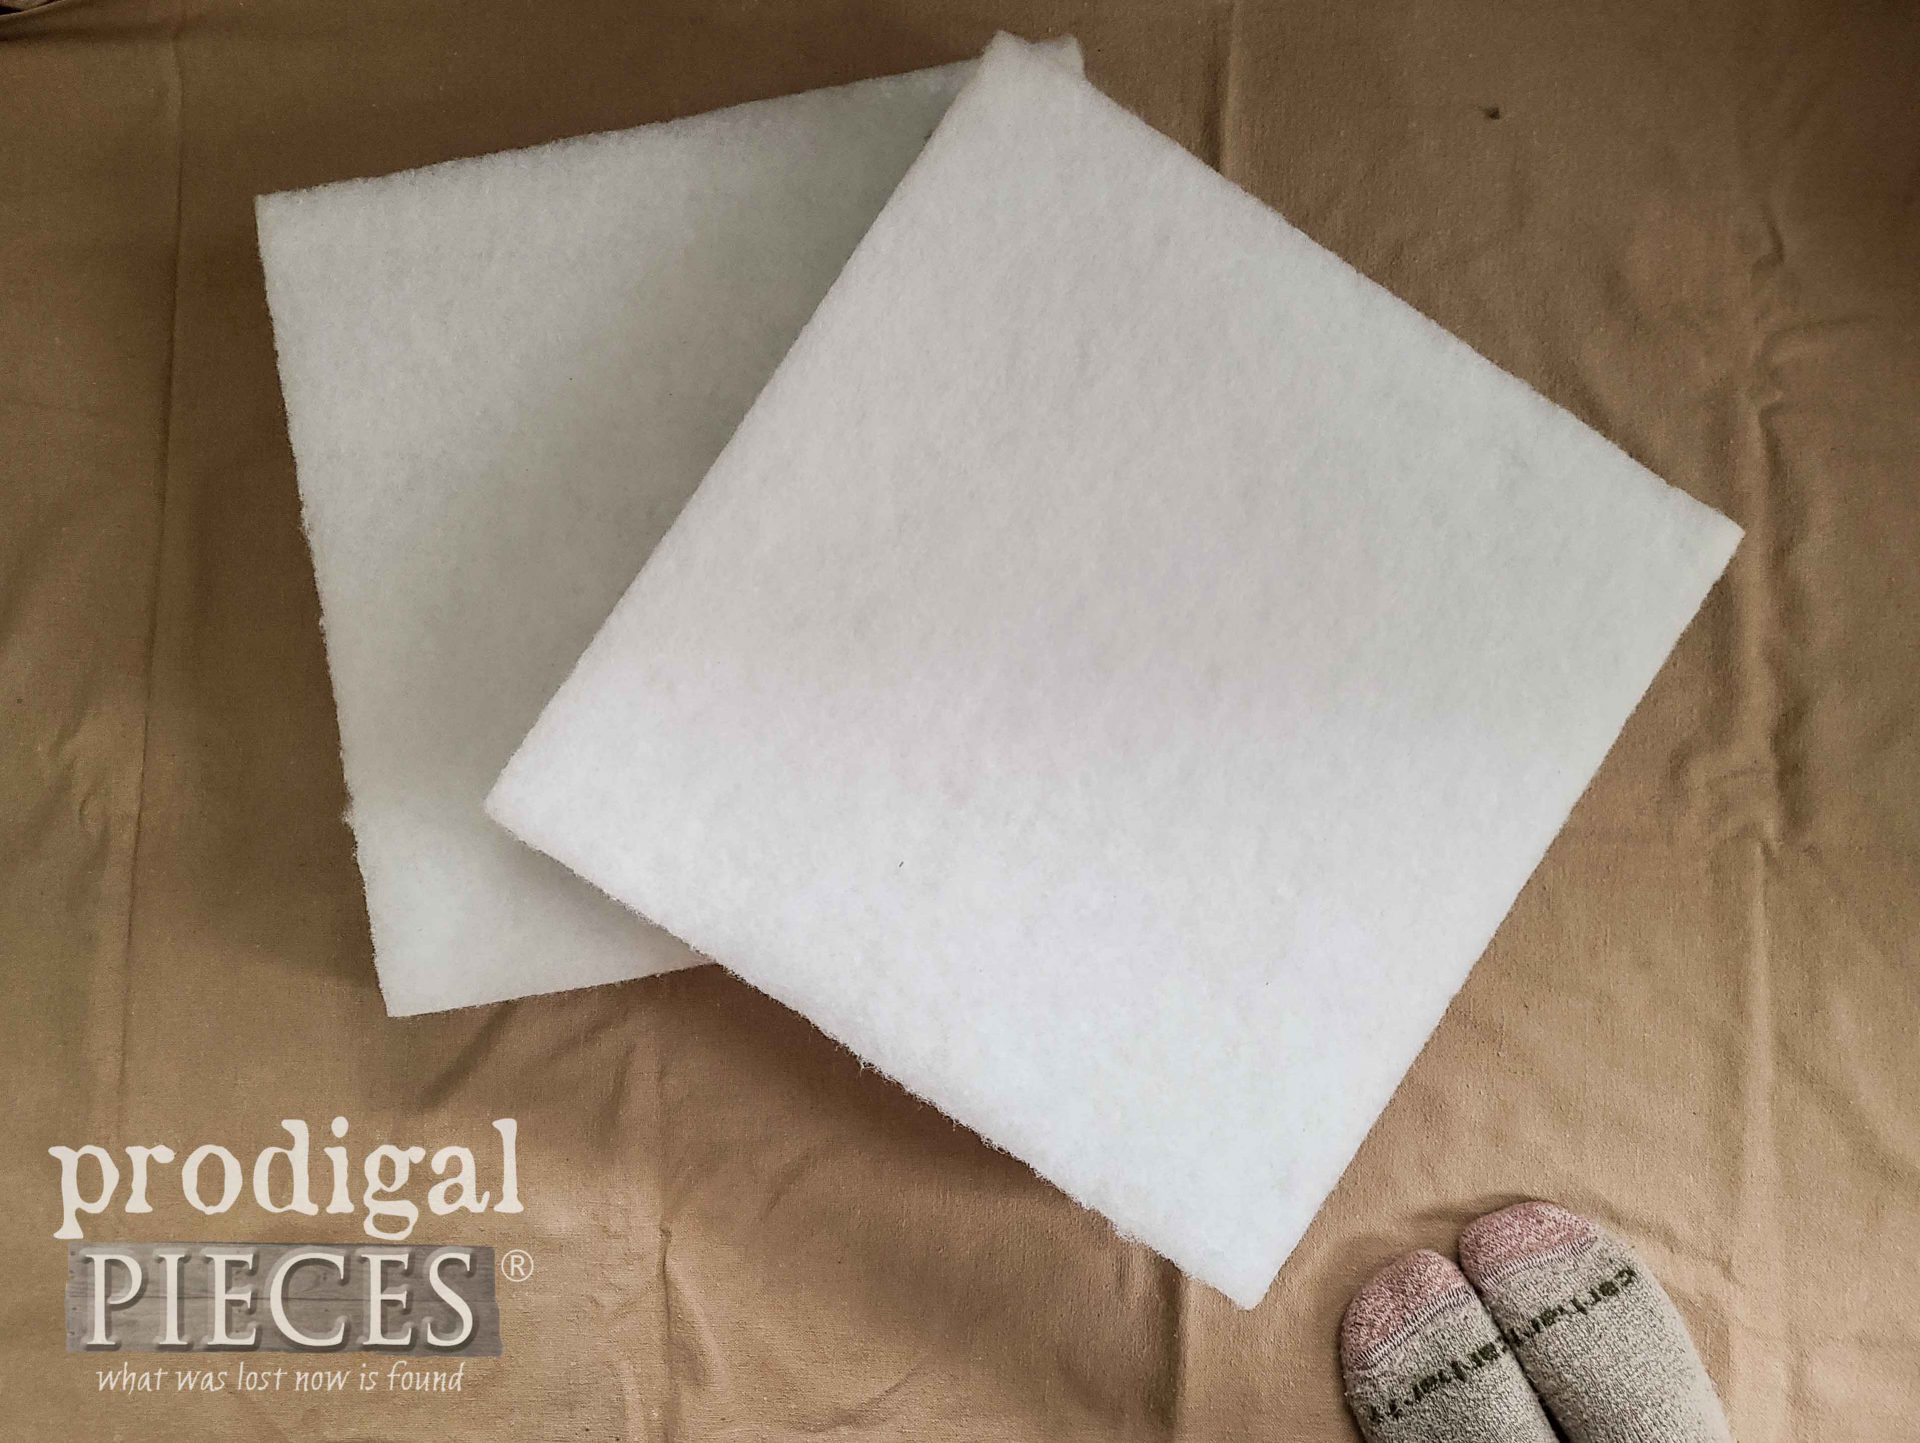 Upholstery Cushions and Fabric | prodigalpieces.com